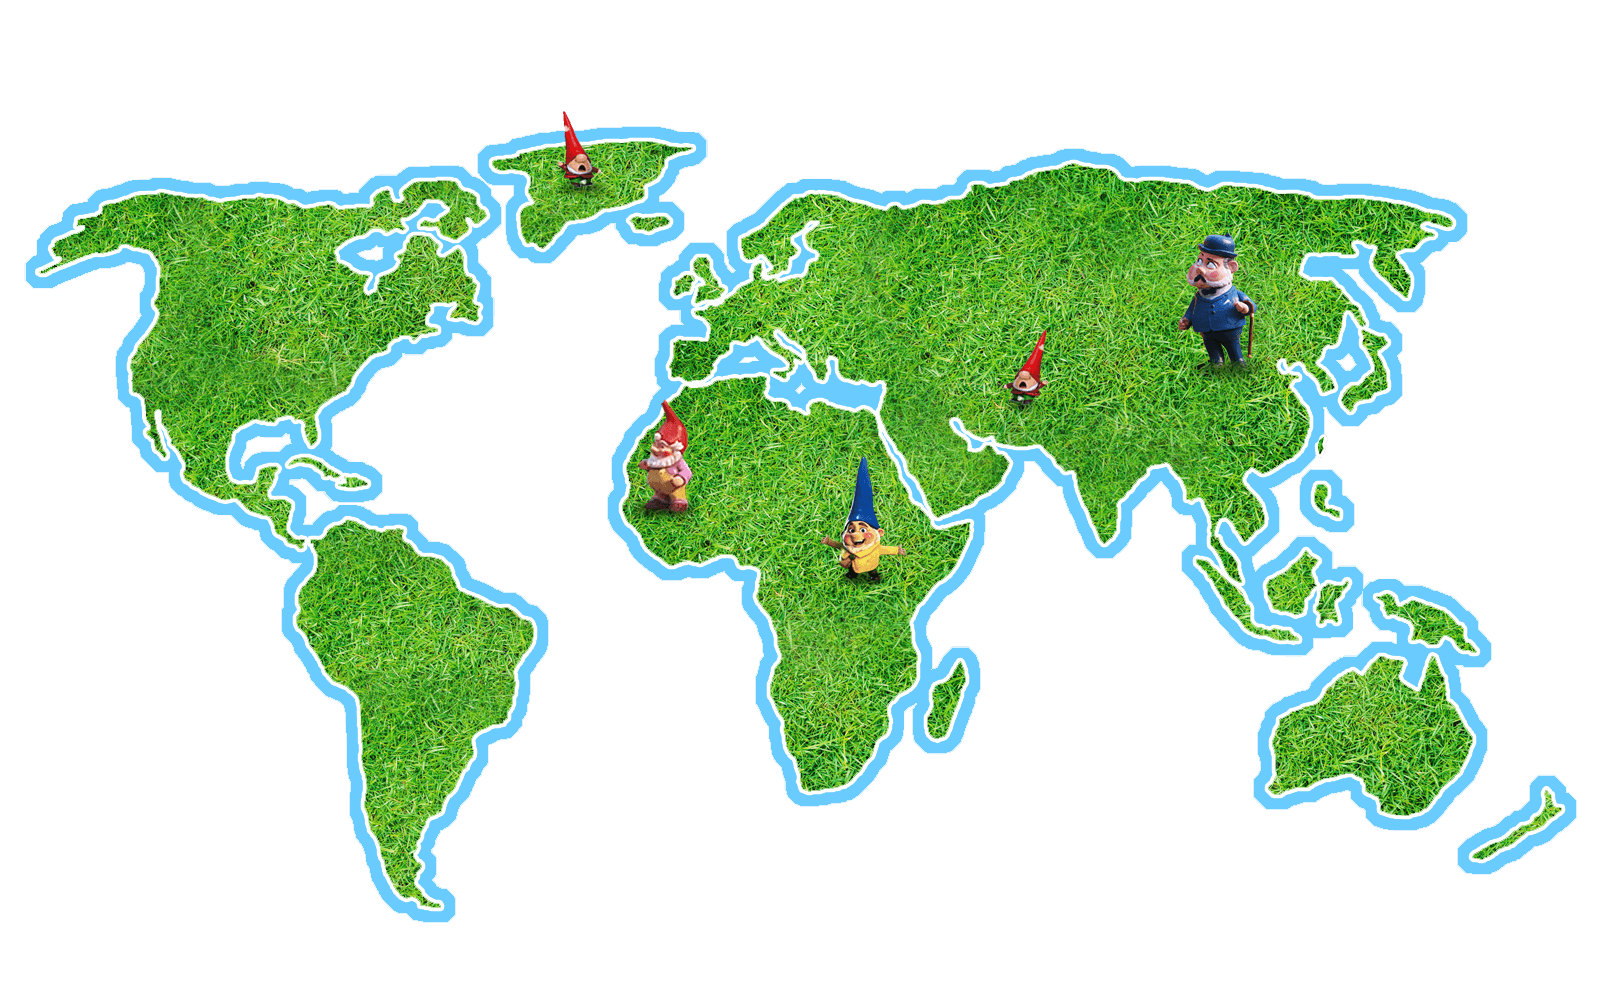 Map of the world png. Sherlock gnomes maps in